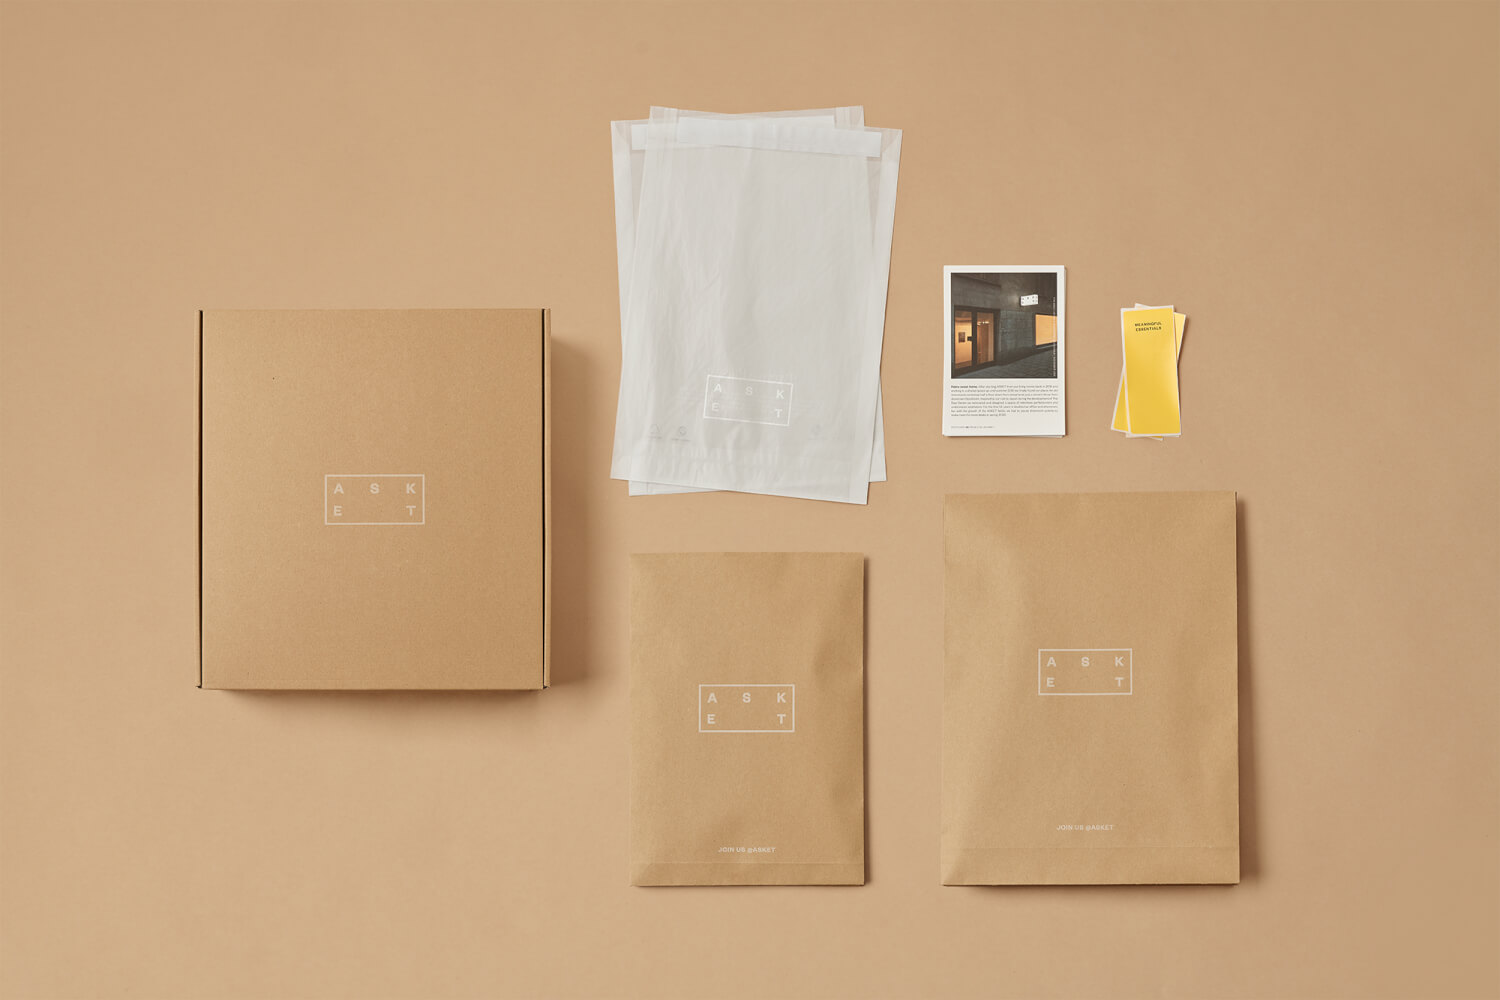 Top down image of Asket packaging laid flat